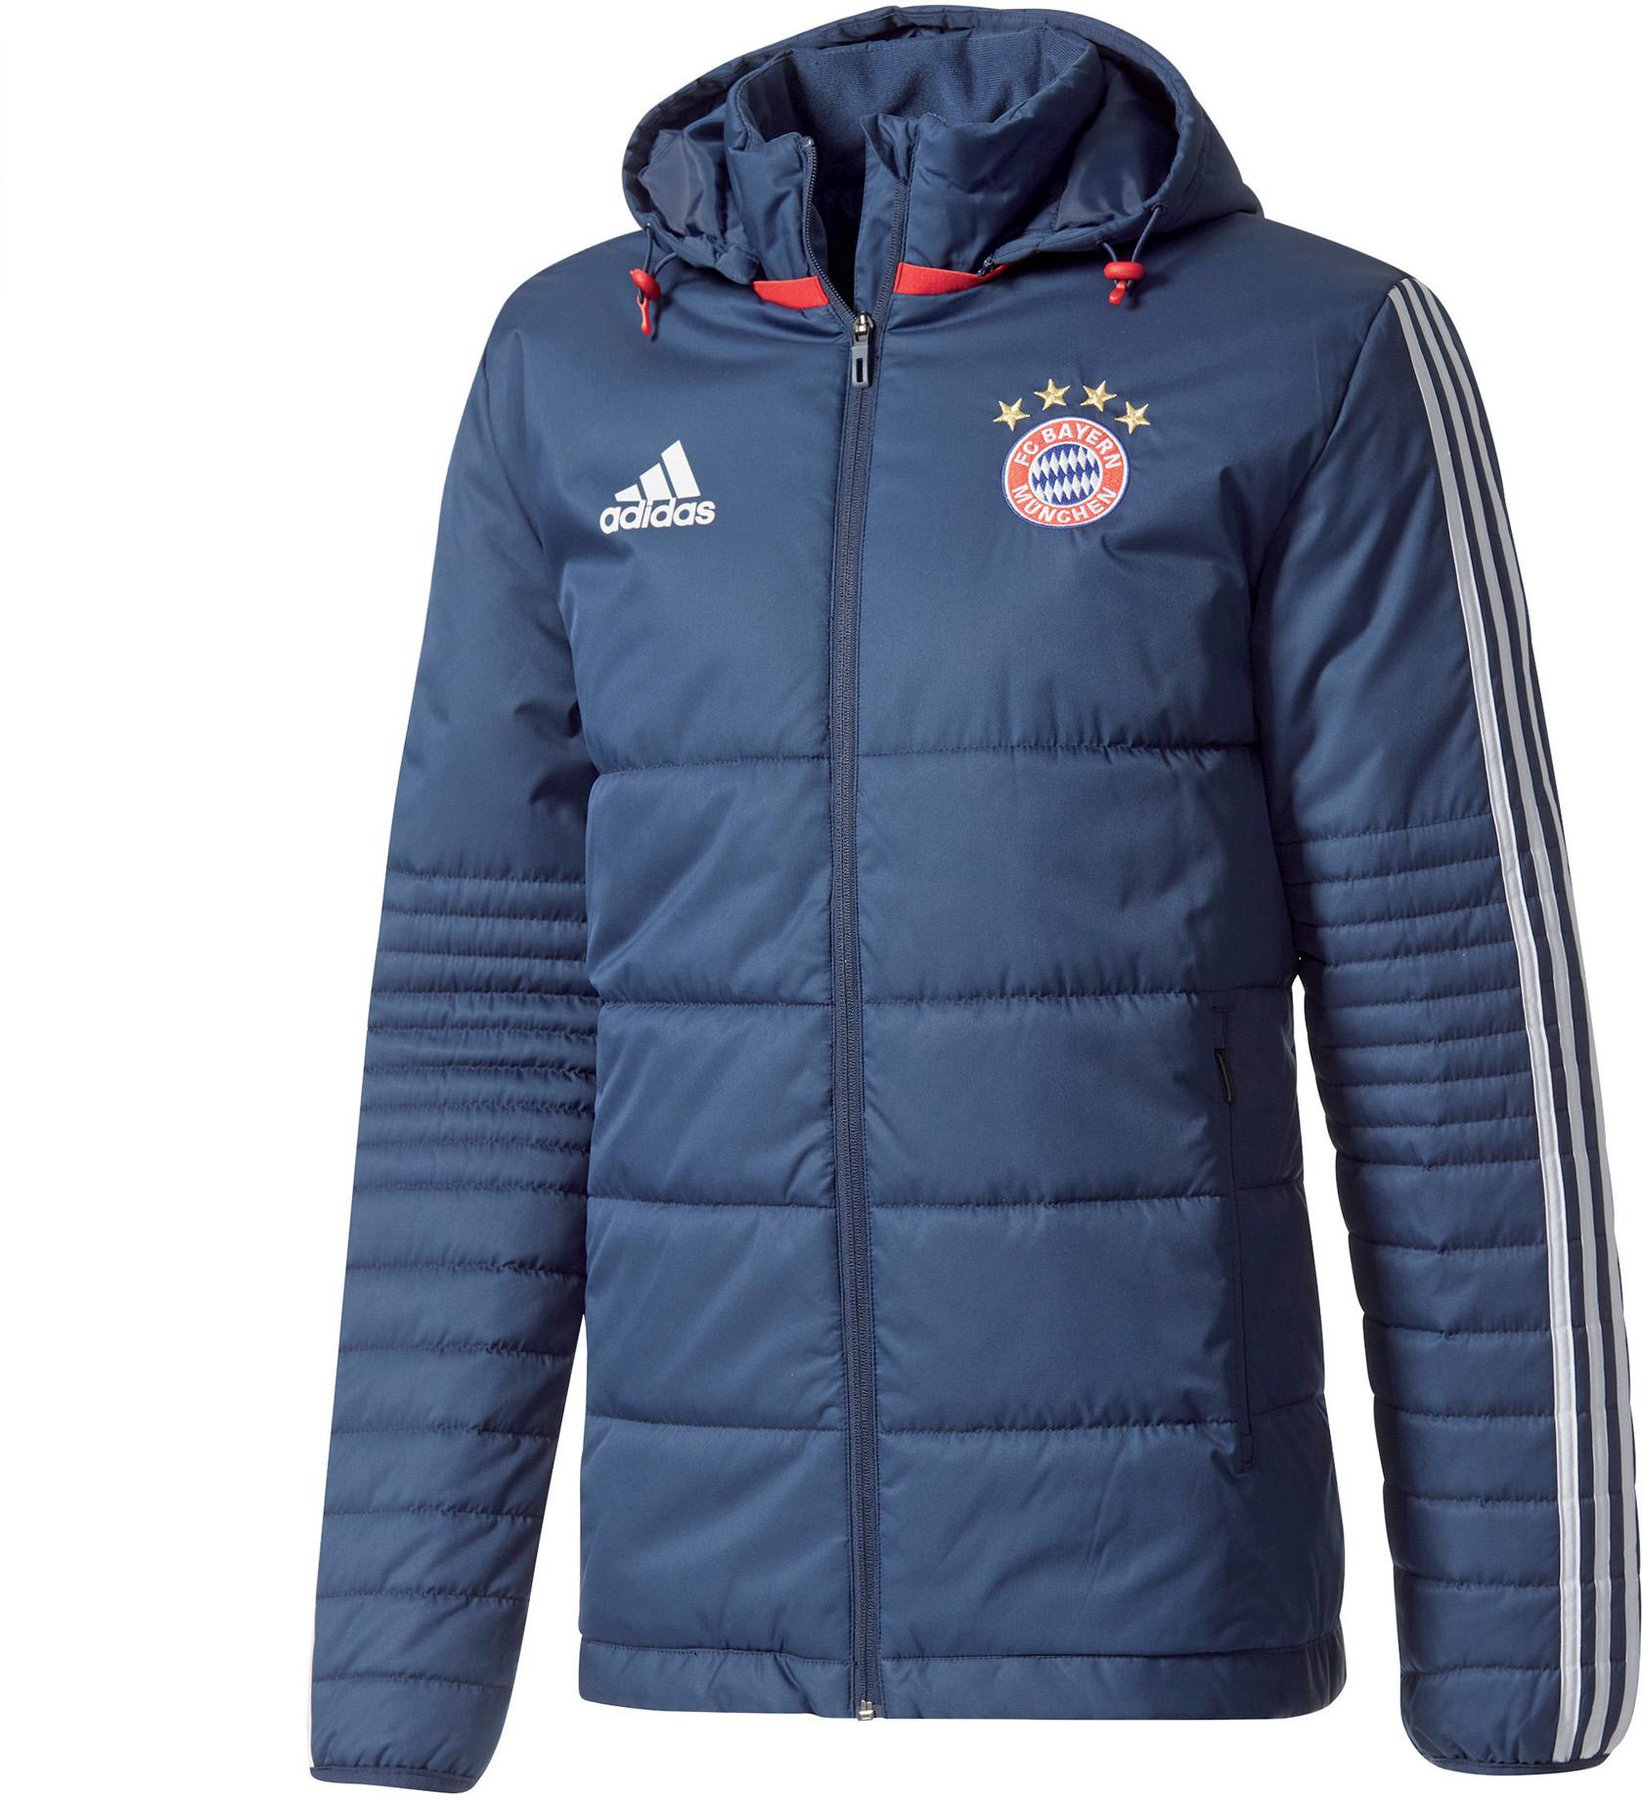 buy best 100% authentic good out x Adidas Winterjacke